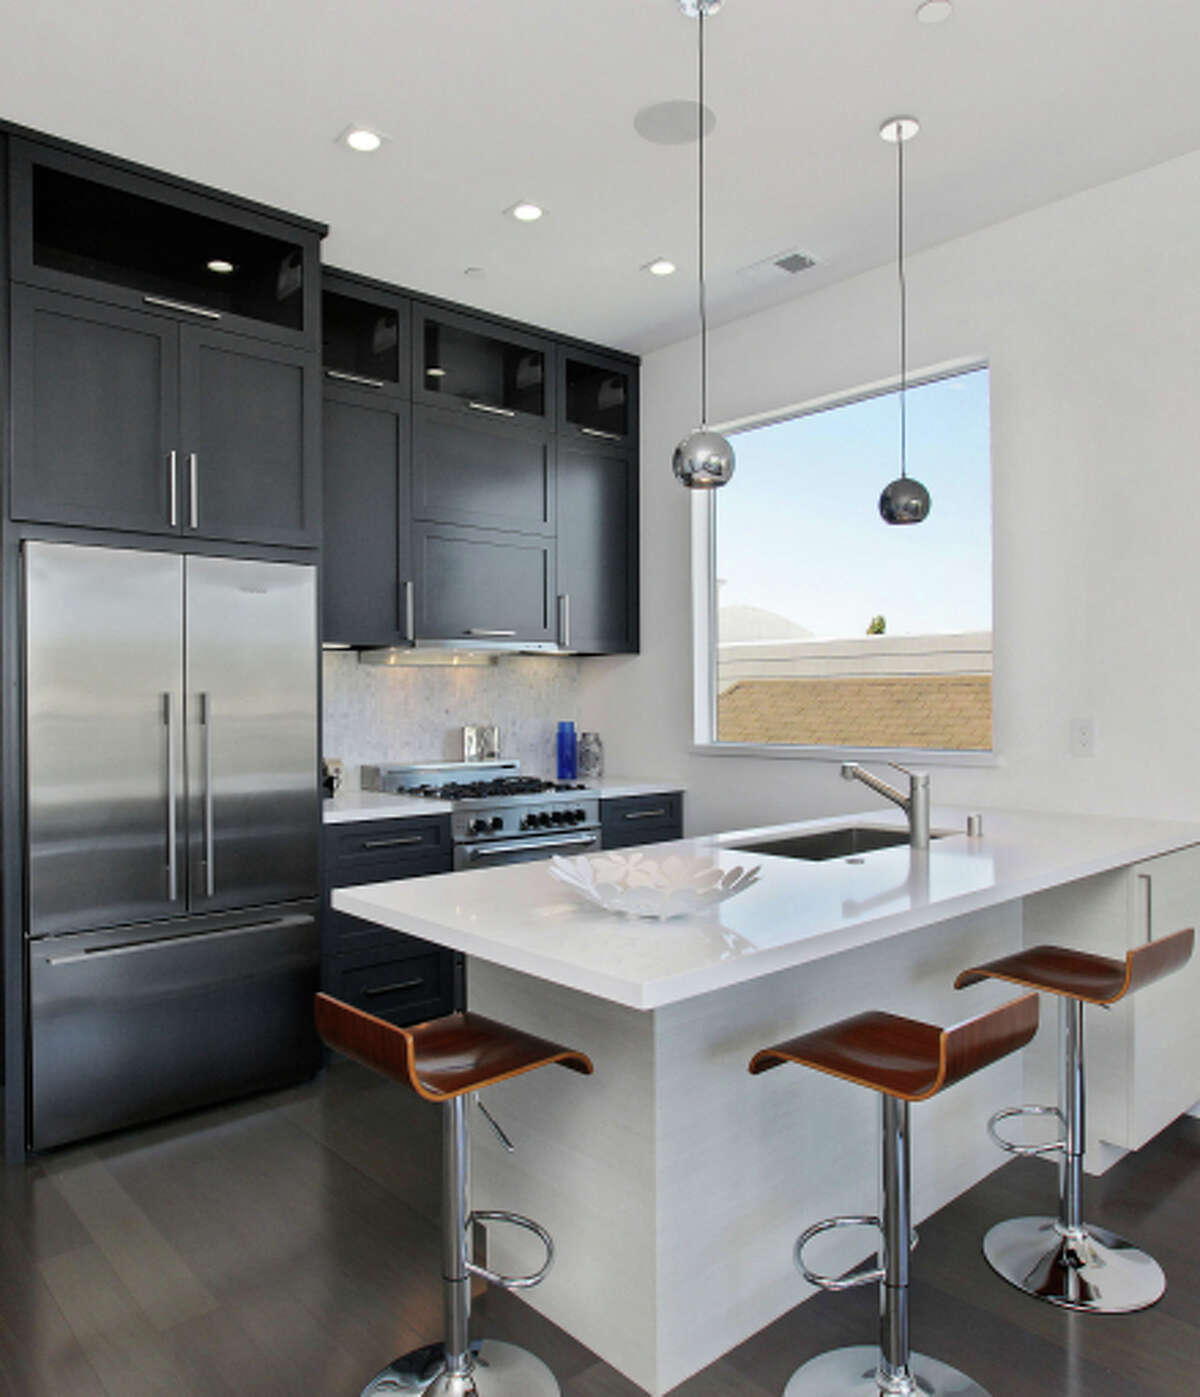 The kitchen hosts a Bertazzoni range and a breakfast bar beneath pendant lights.